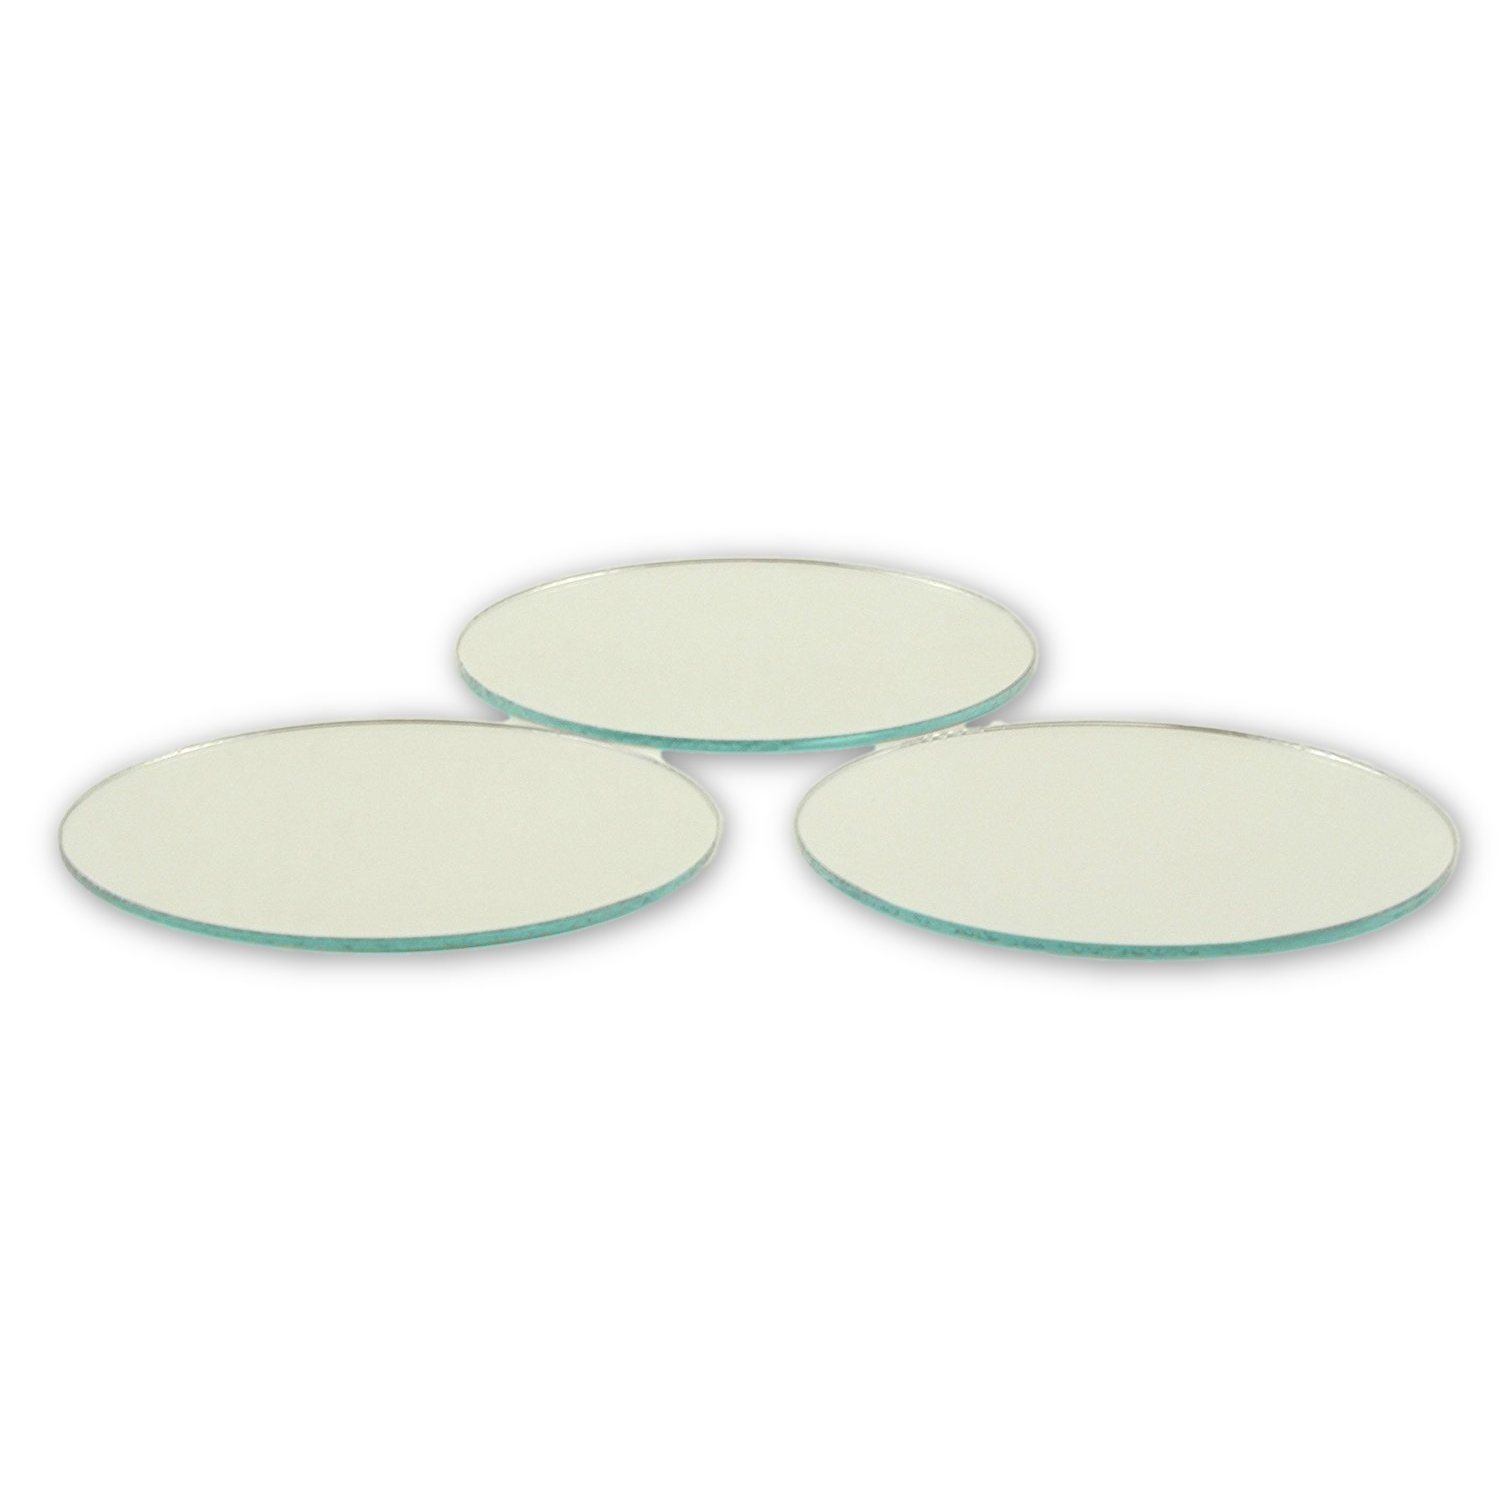 Small Mirror Pieces: 2.5 Inch Small Round Craft Mirrors Bulk 24 Pieces Also